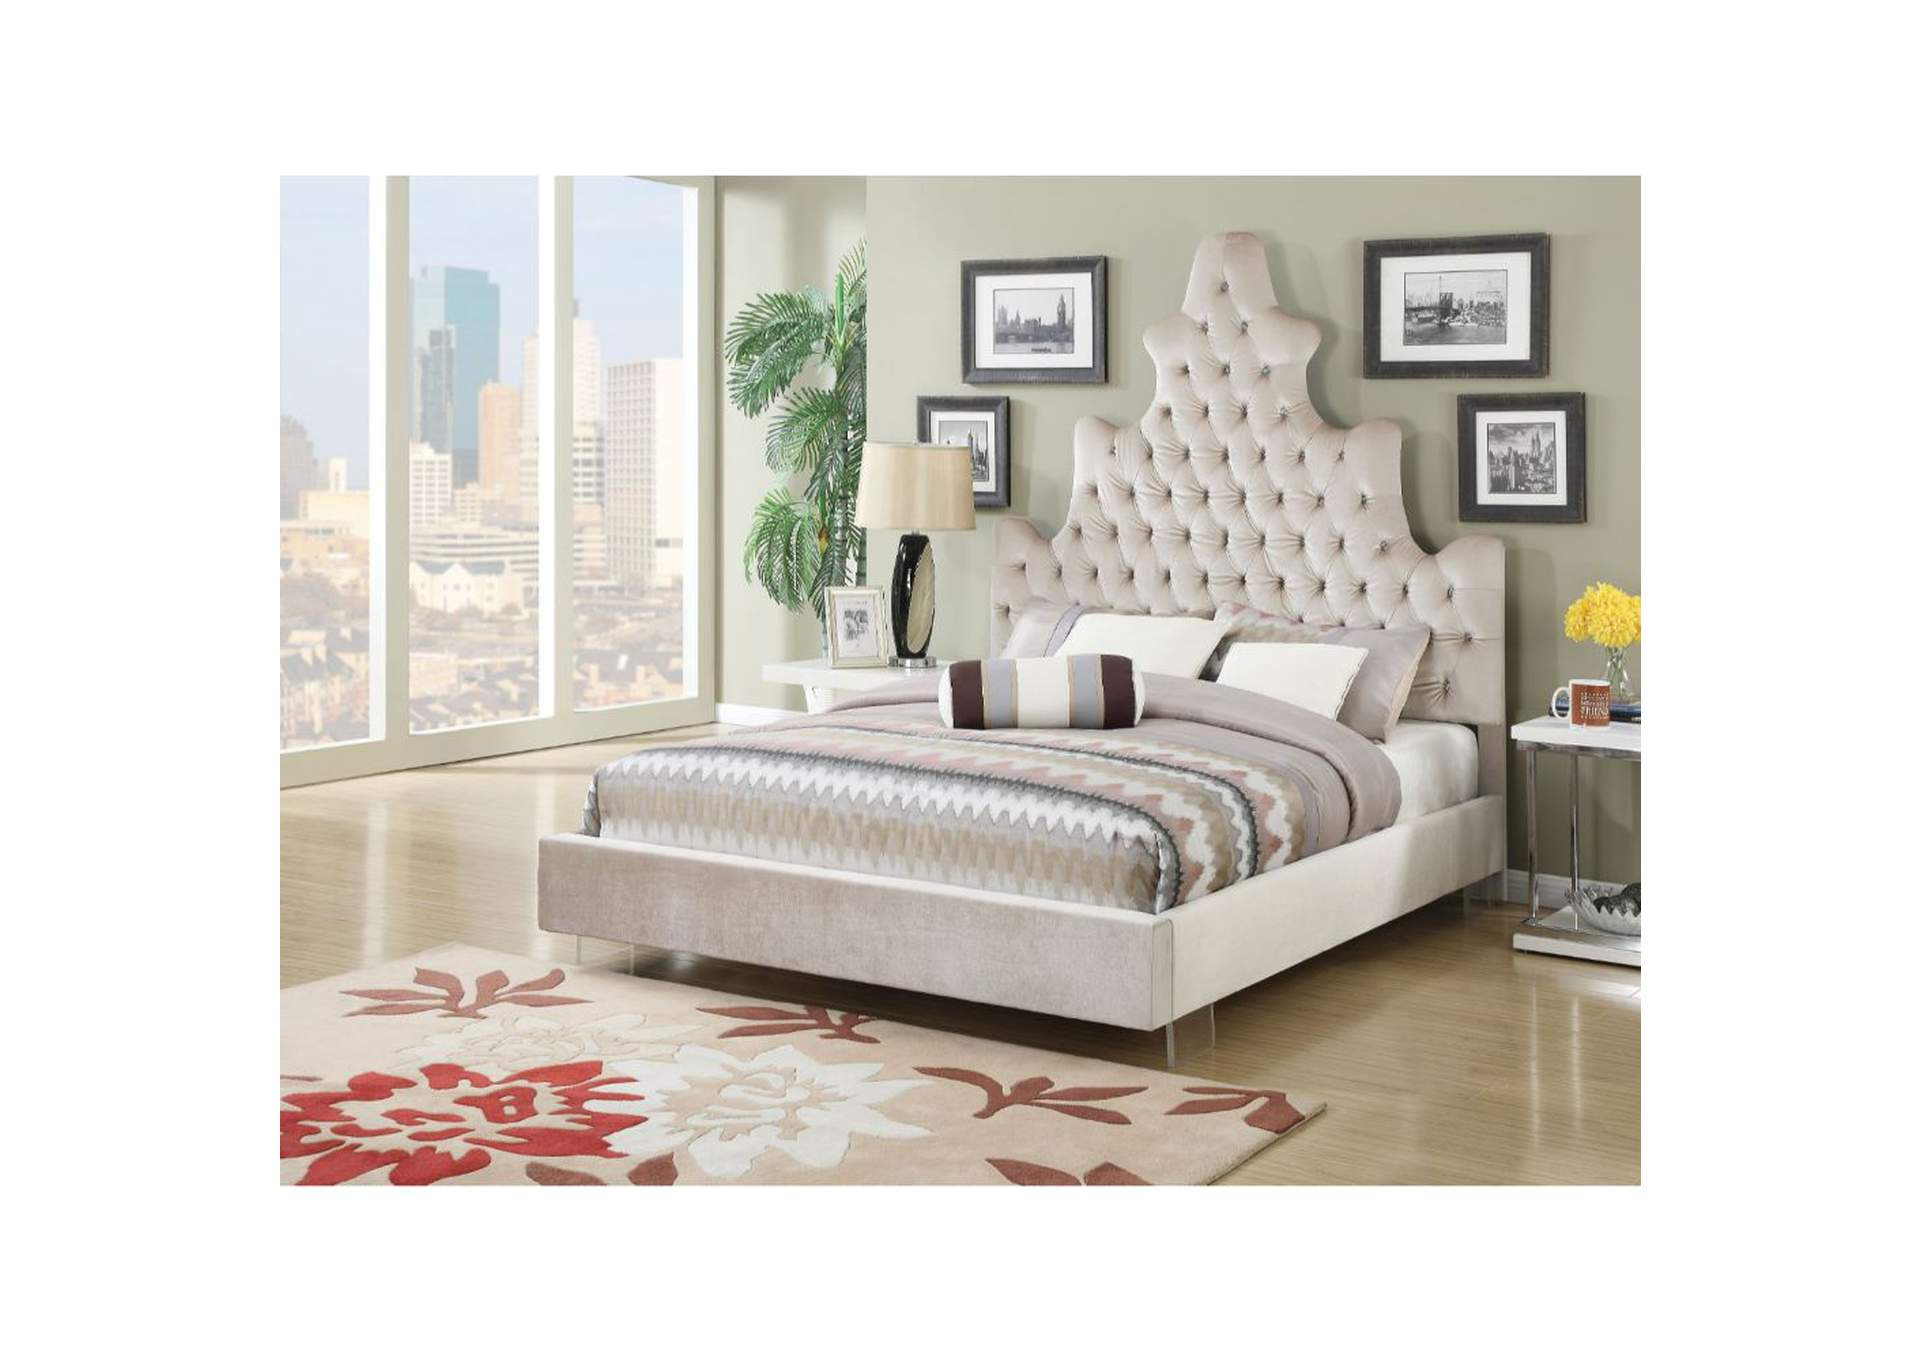 Honesty Sand Plush Queen Bed,Acme